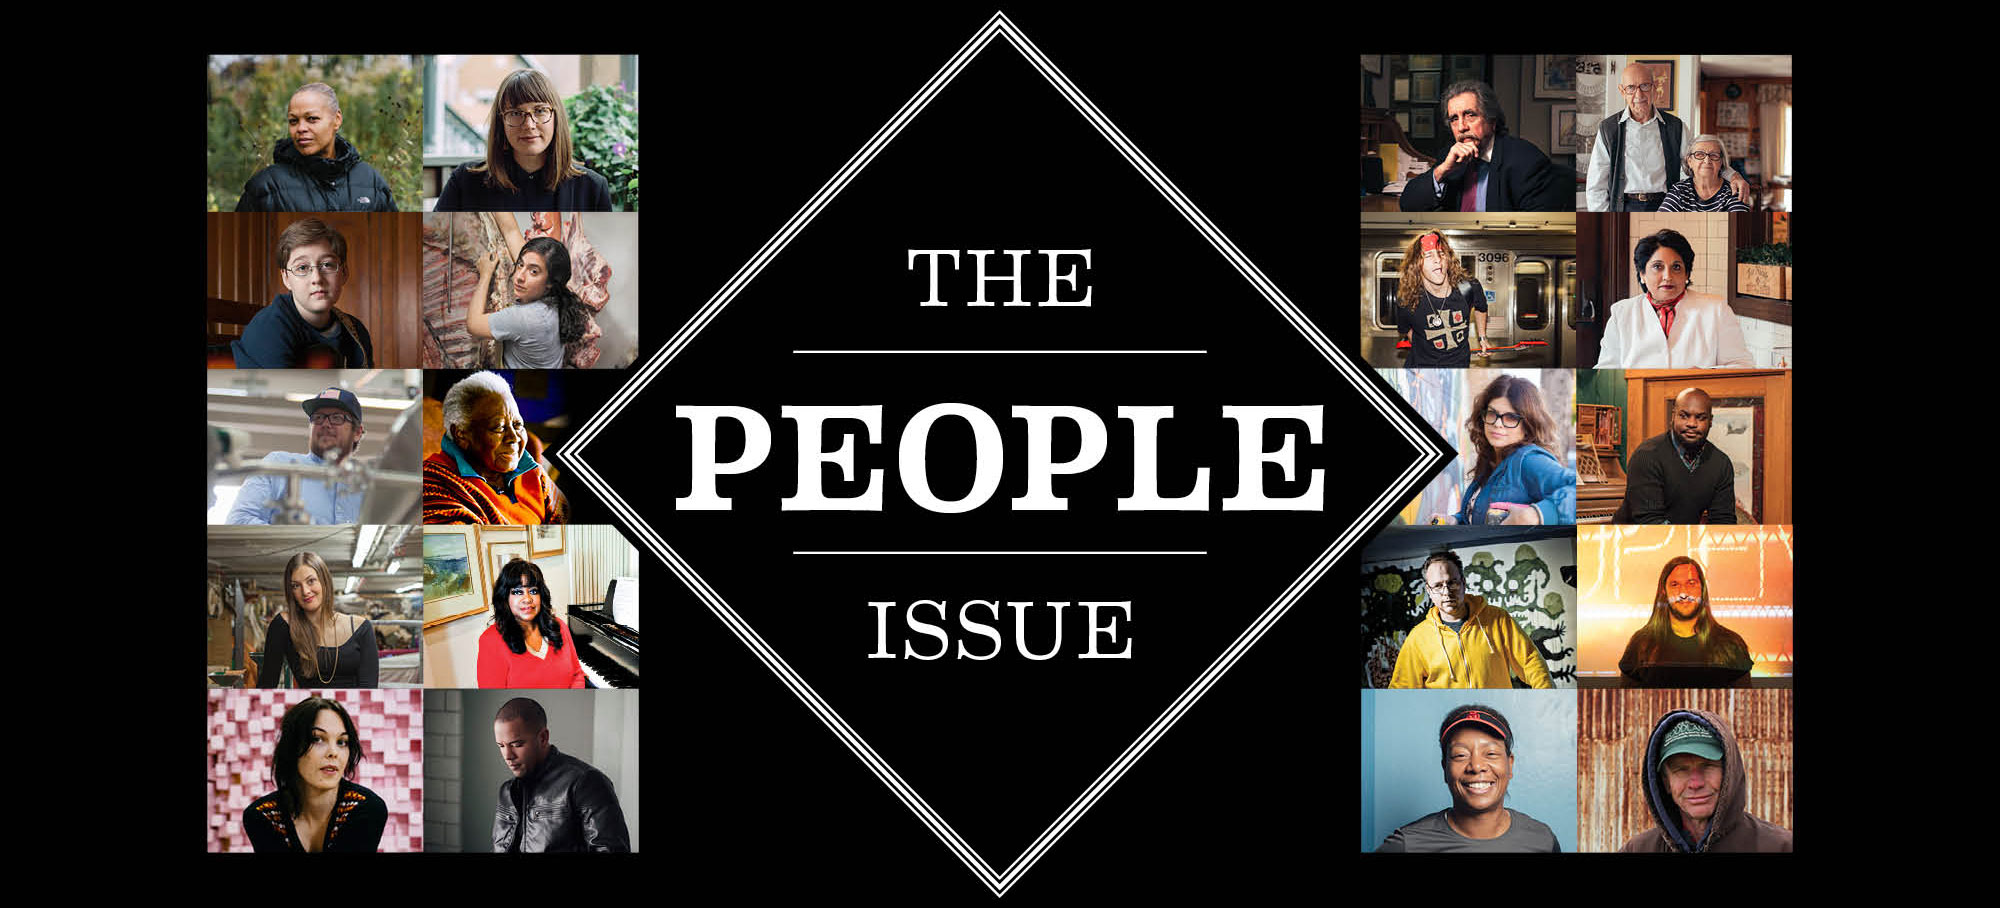 The People Issue